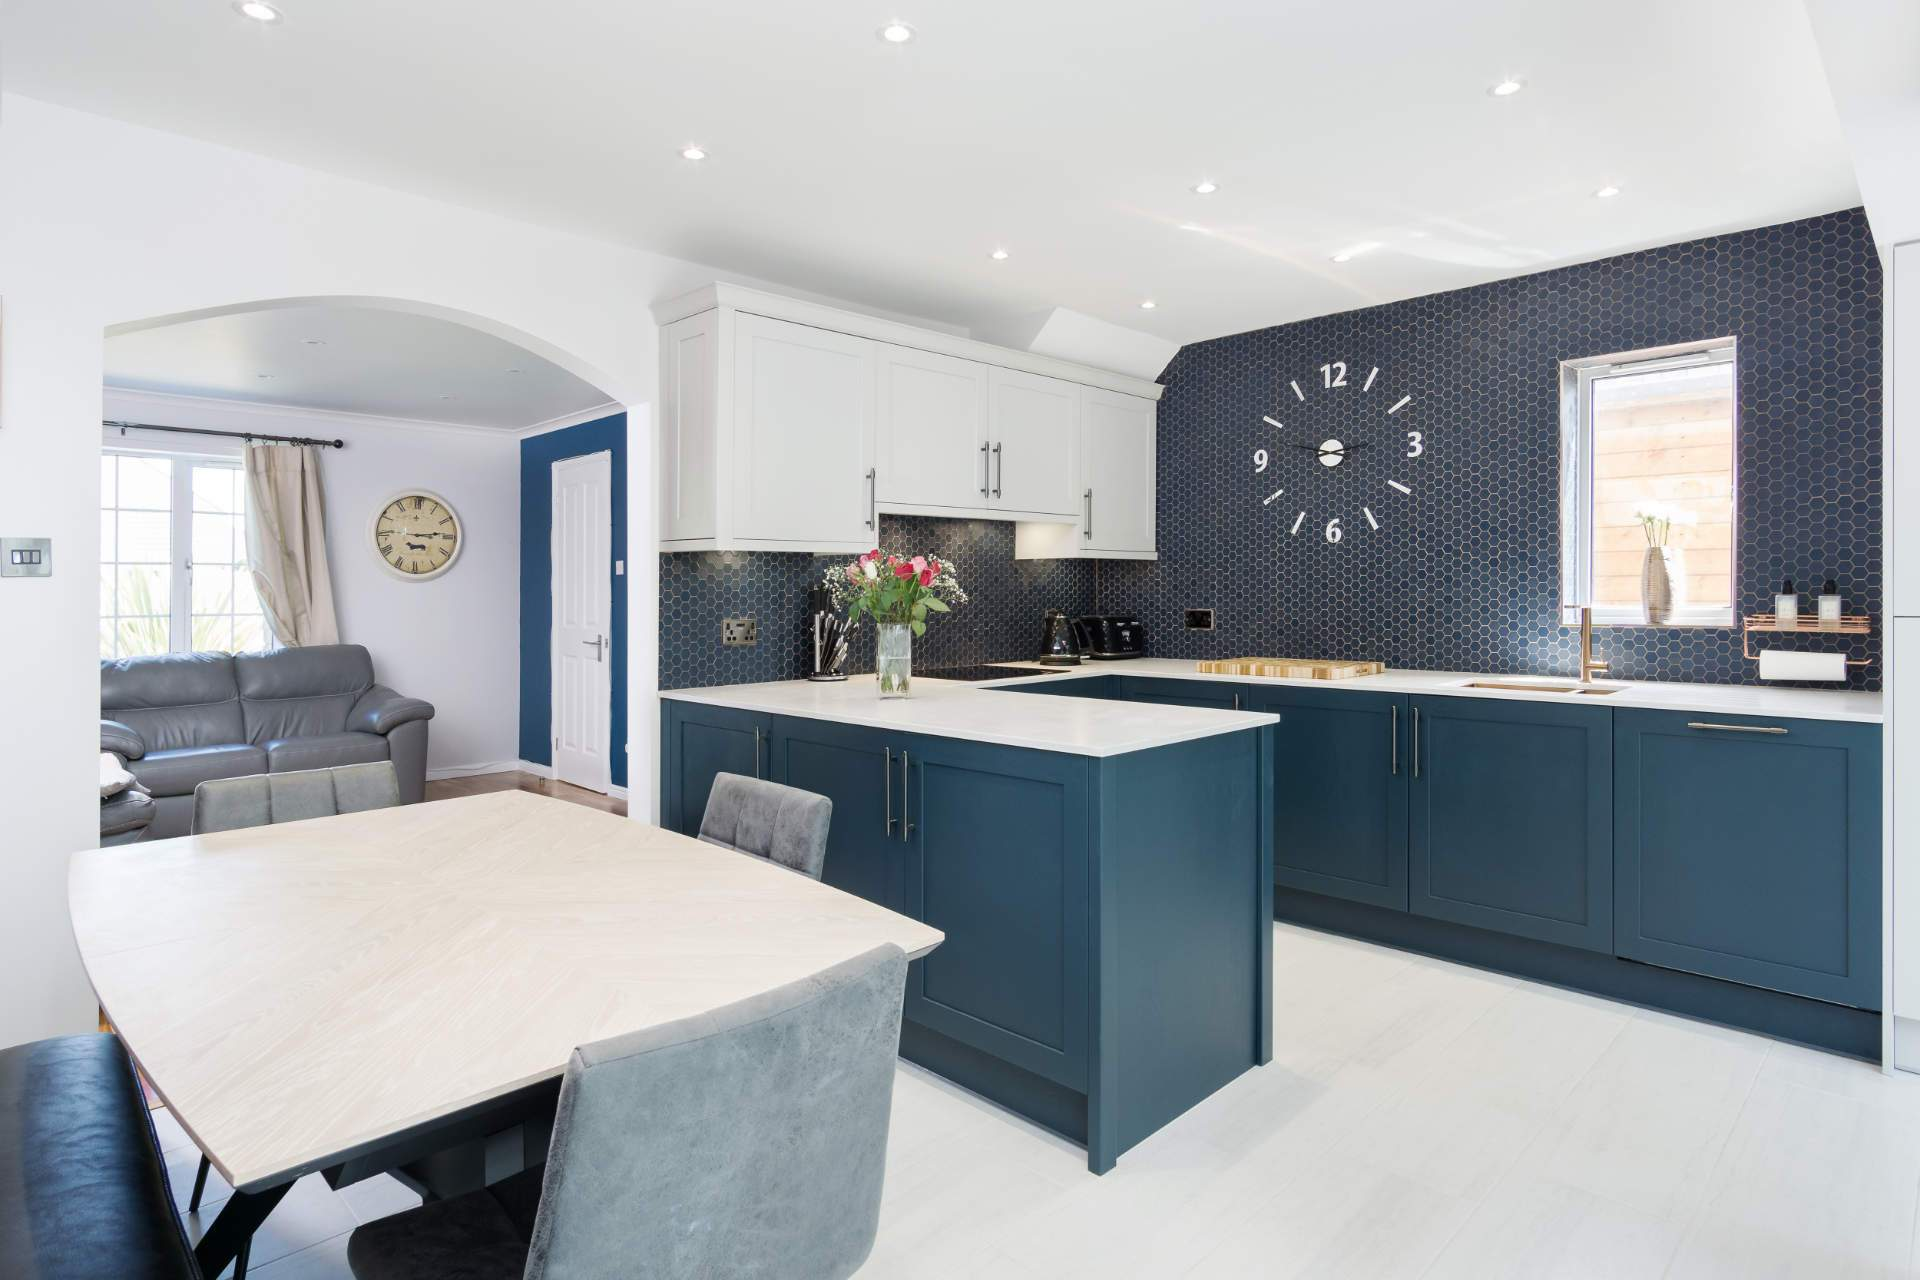 Compact kitchen in marine blue and light grey